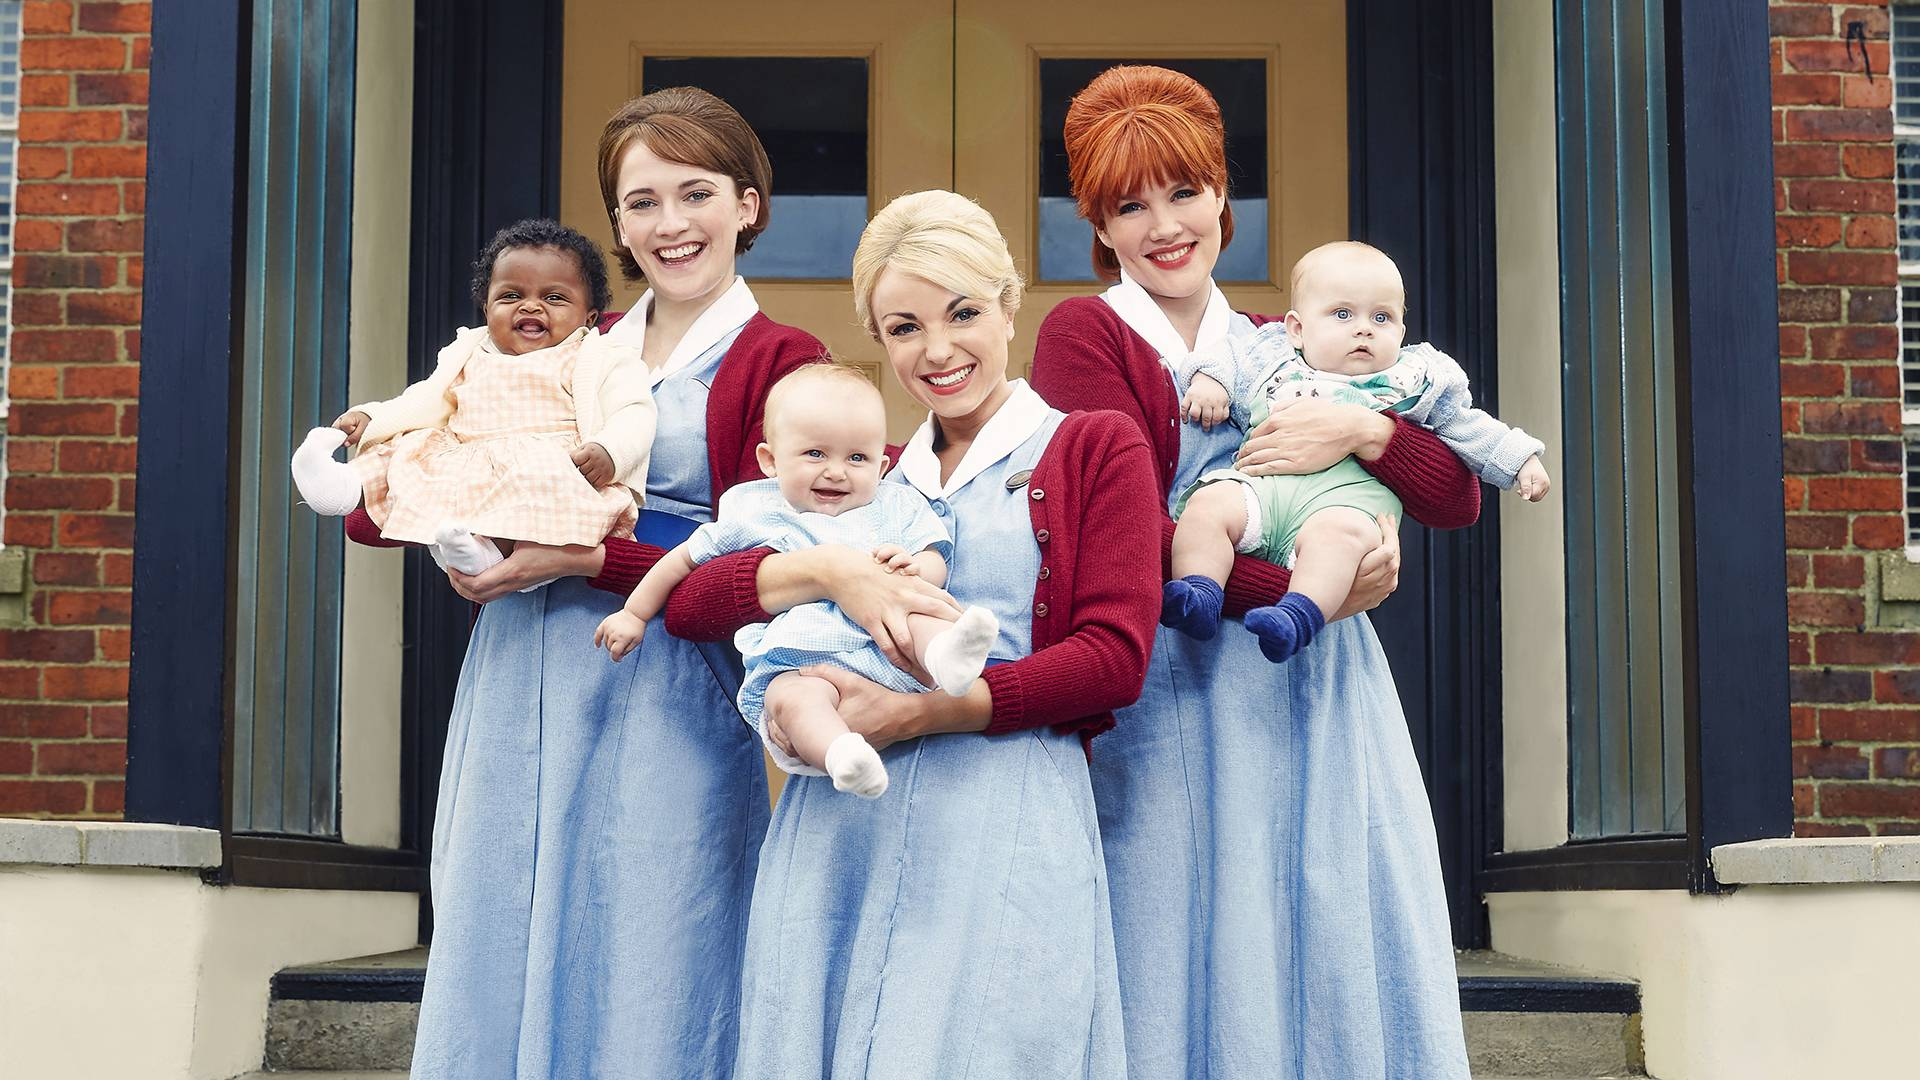 'Call the Midwife' moves into the '60s in season premiere